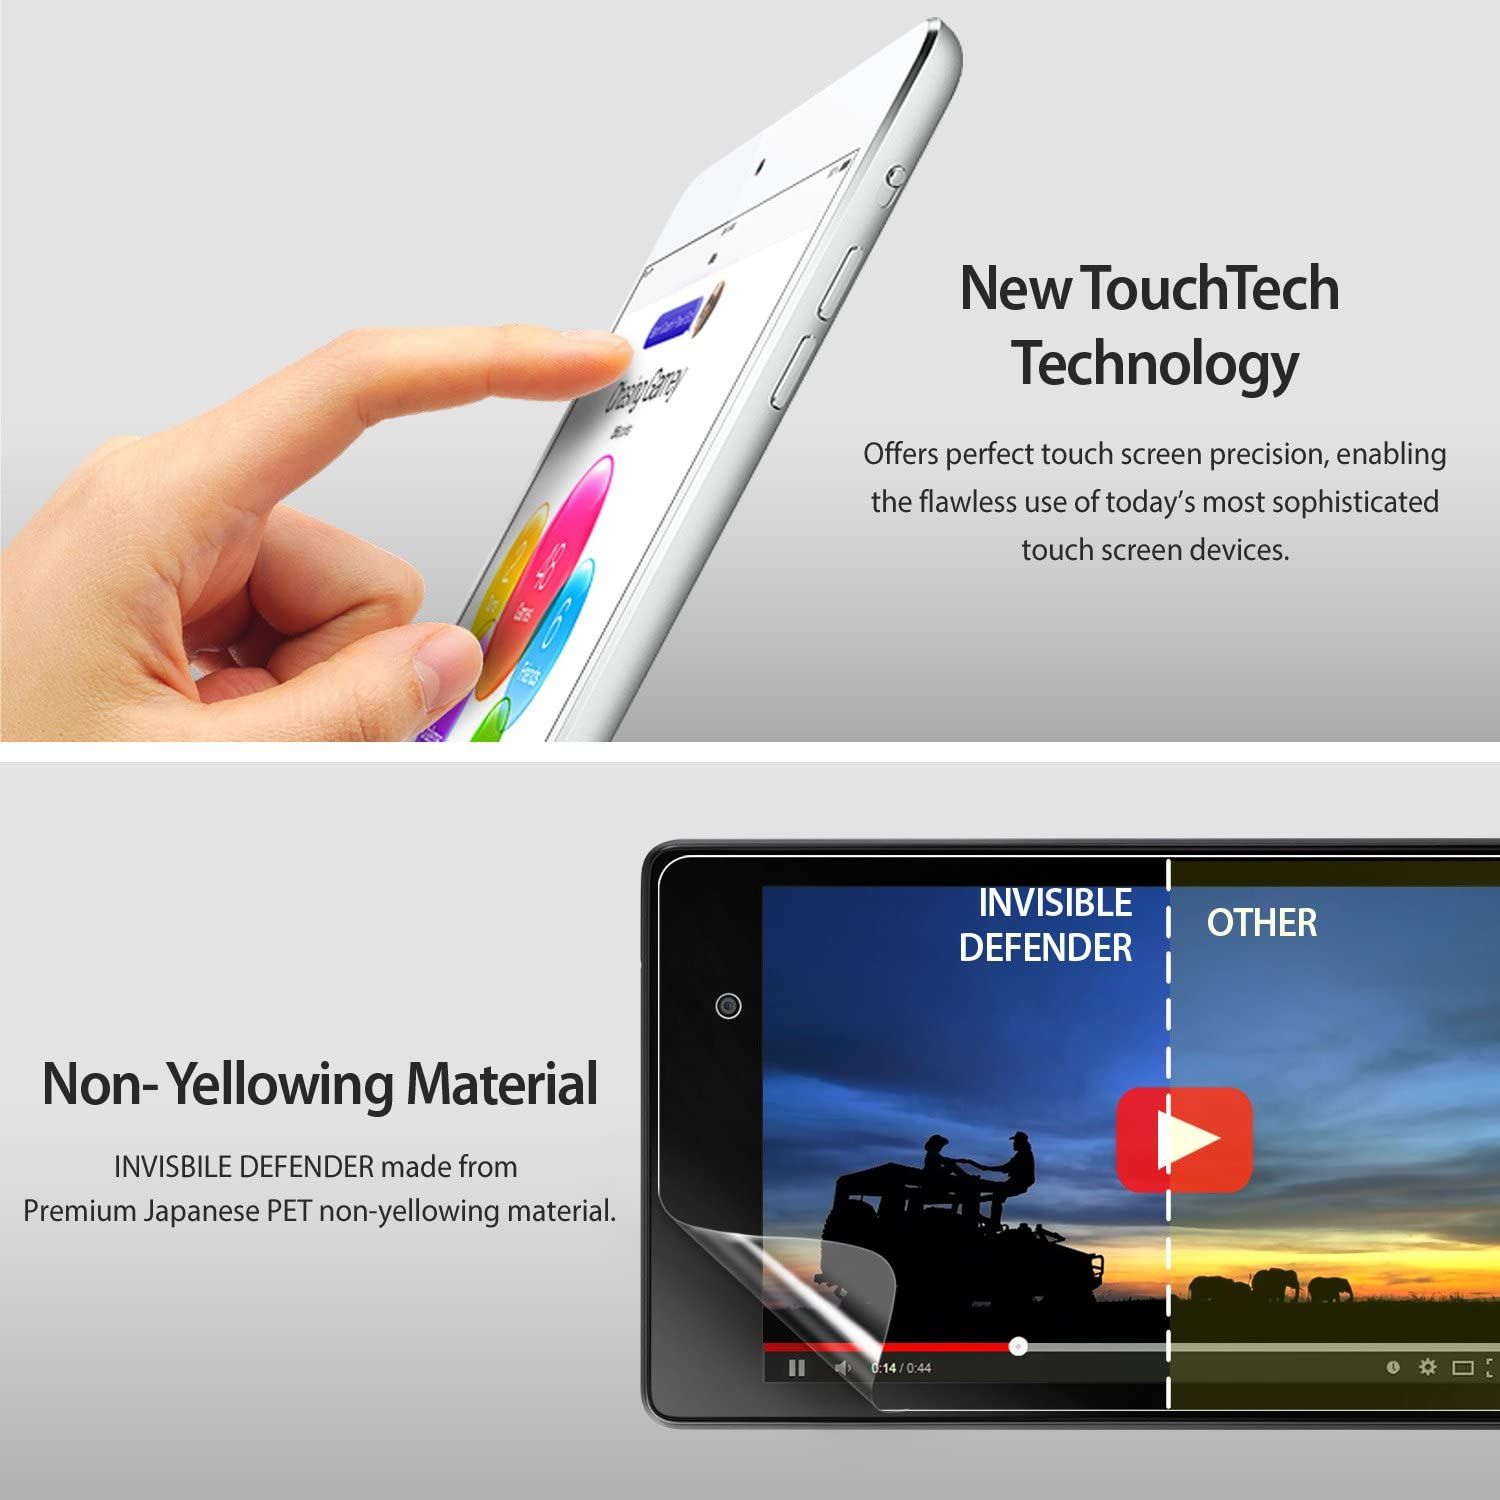 new touchtech technology, non yellowing material